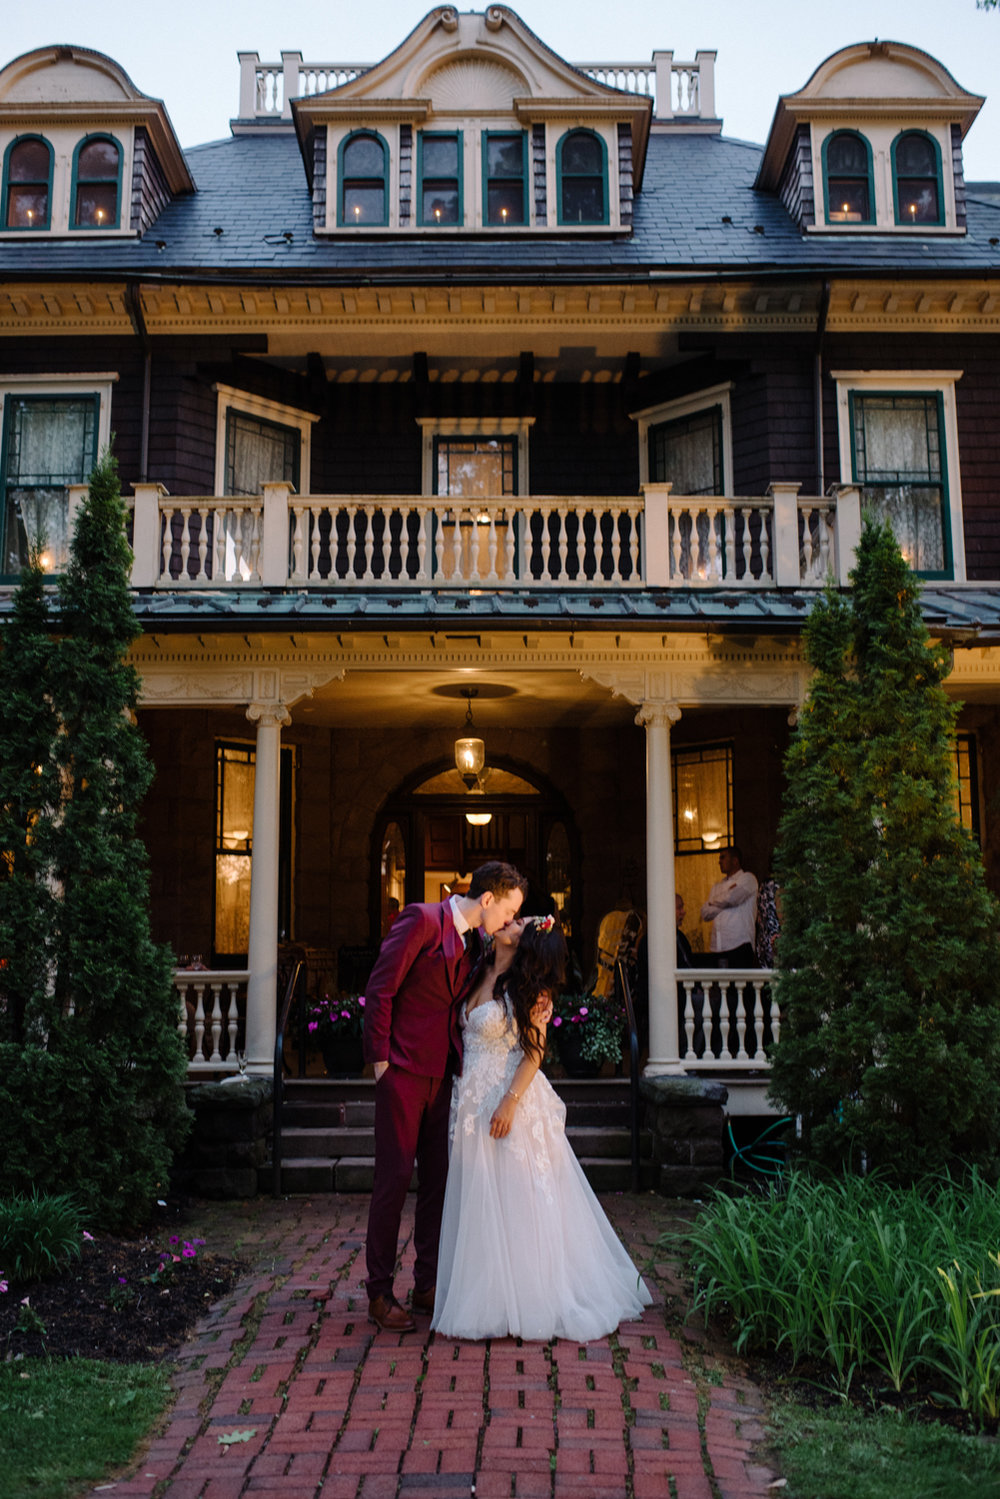 Mariangel+Kieran- Oakeside Mansion Wedding- Bloomfield New Jersey- Olivia Christina Photo-144.JPG